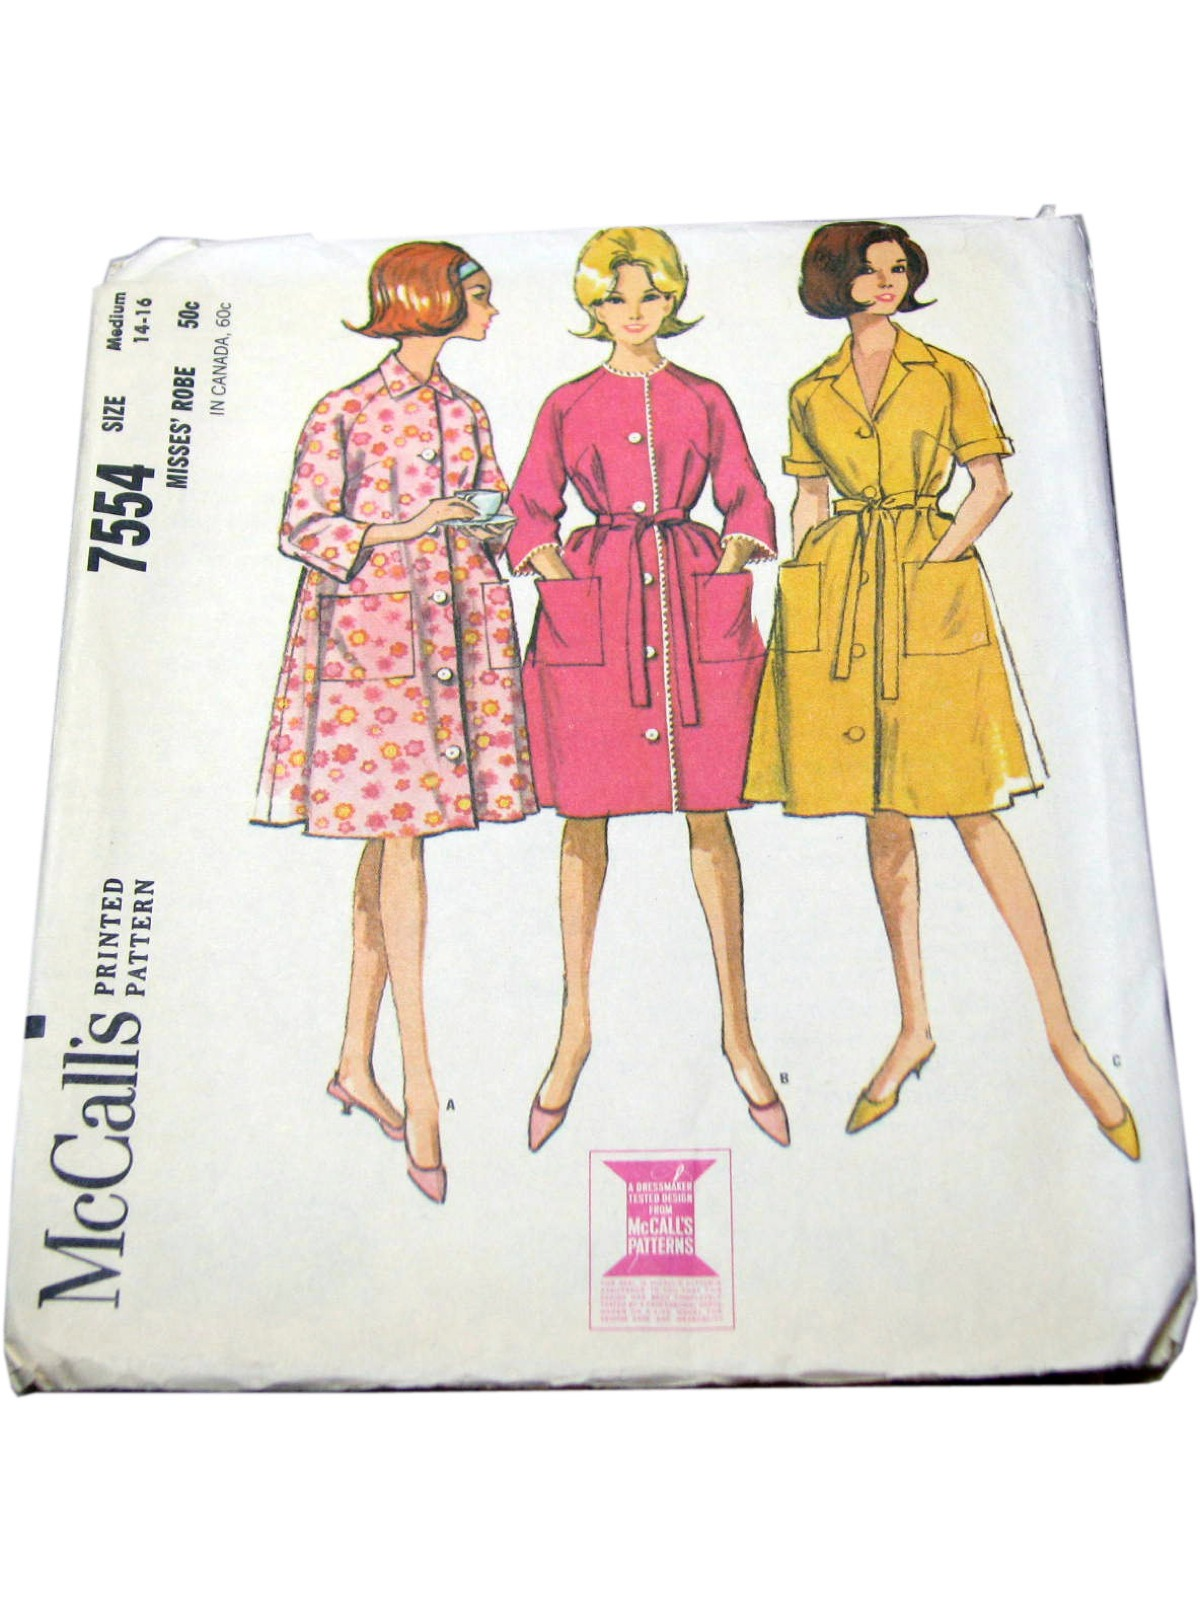 ee4842424882 Sixties McCalls Pattern No. 7554 Sewing Pattern: 60s -McCalls ...